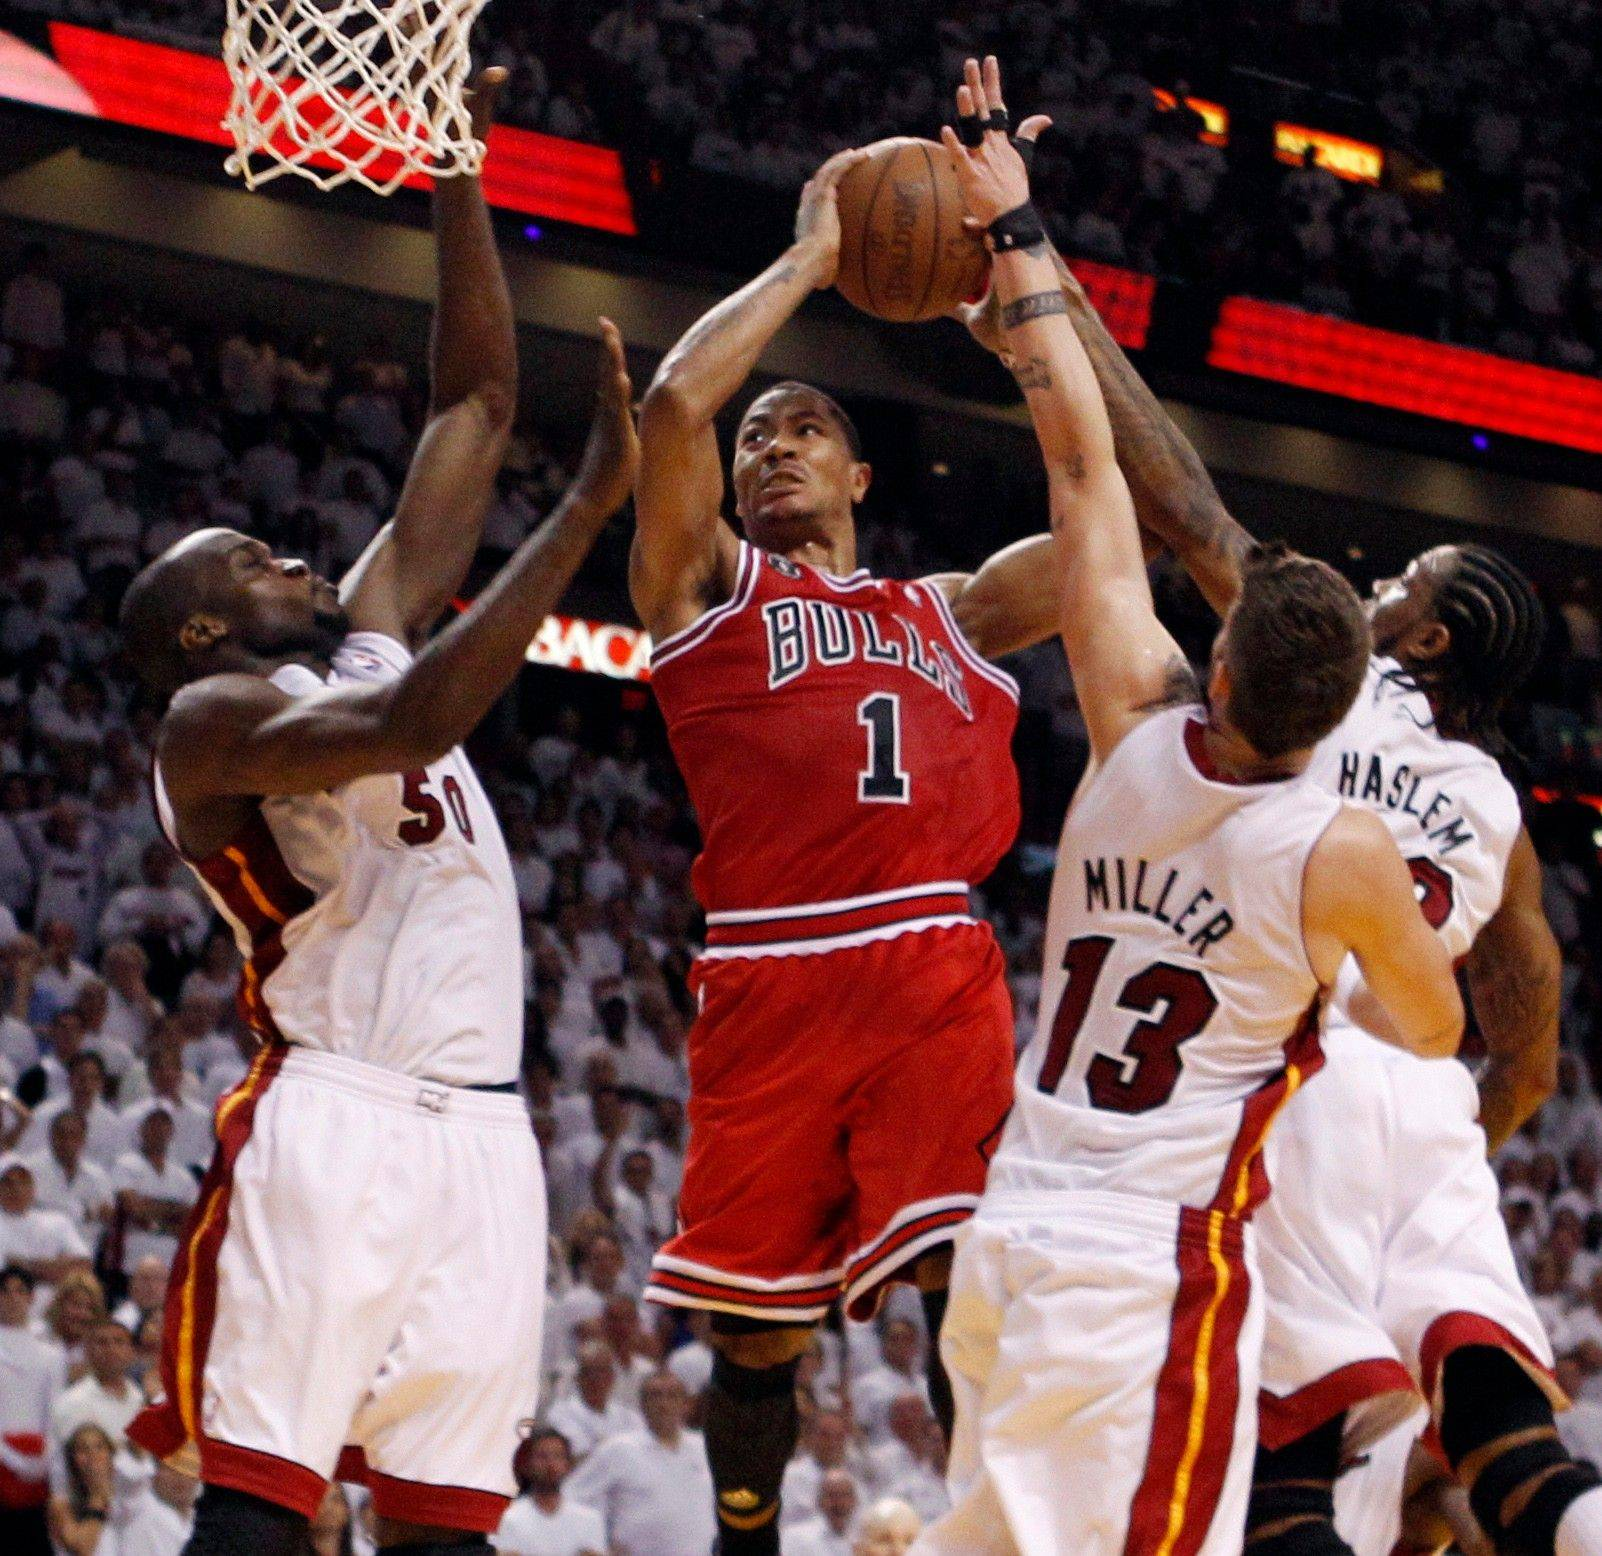 Miami Heat's Mike Miller (13), Udonis Haslem and Joel Anthony surrround Derrick Rose as he goes for a basket during the second half of Game 4 of the NBA Eastern Conference finals basketball series in Miami.